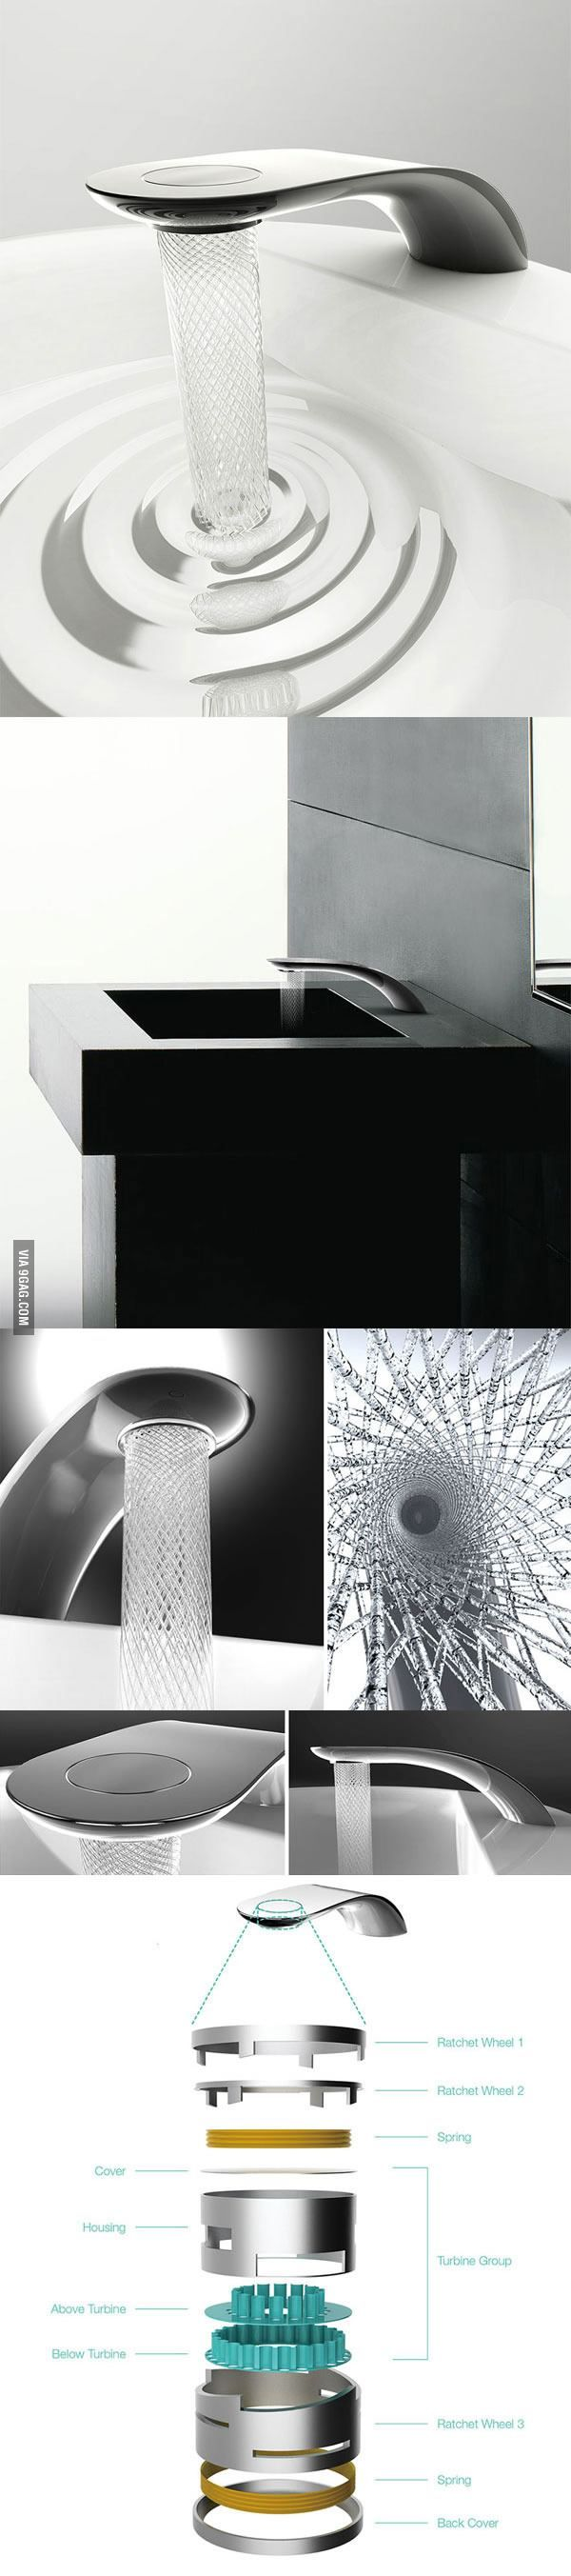 A faucet that creates water patterns to save water